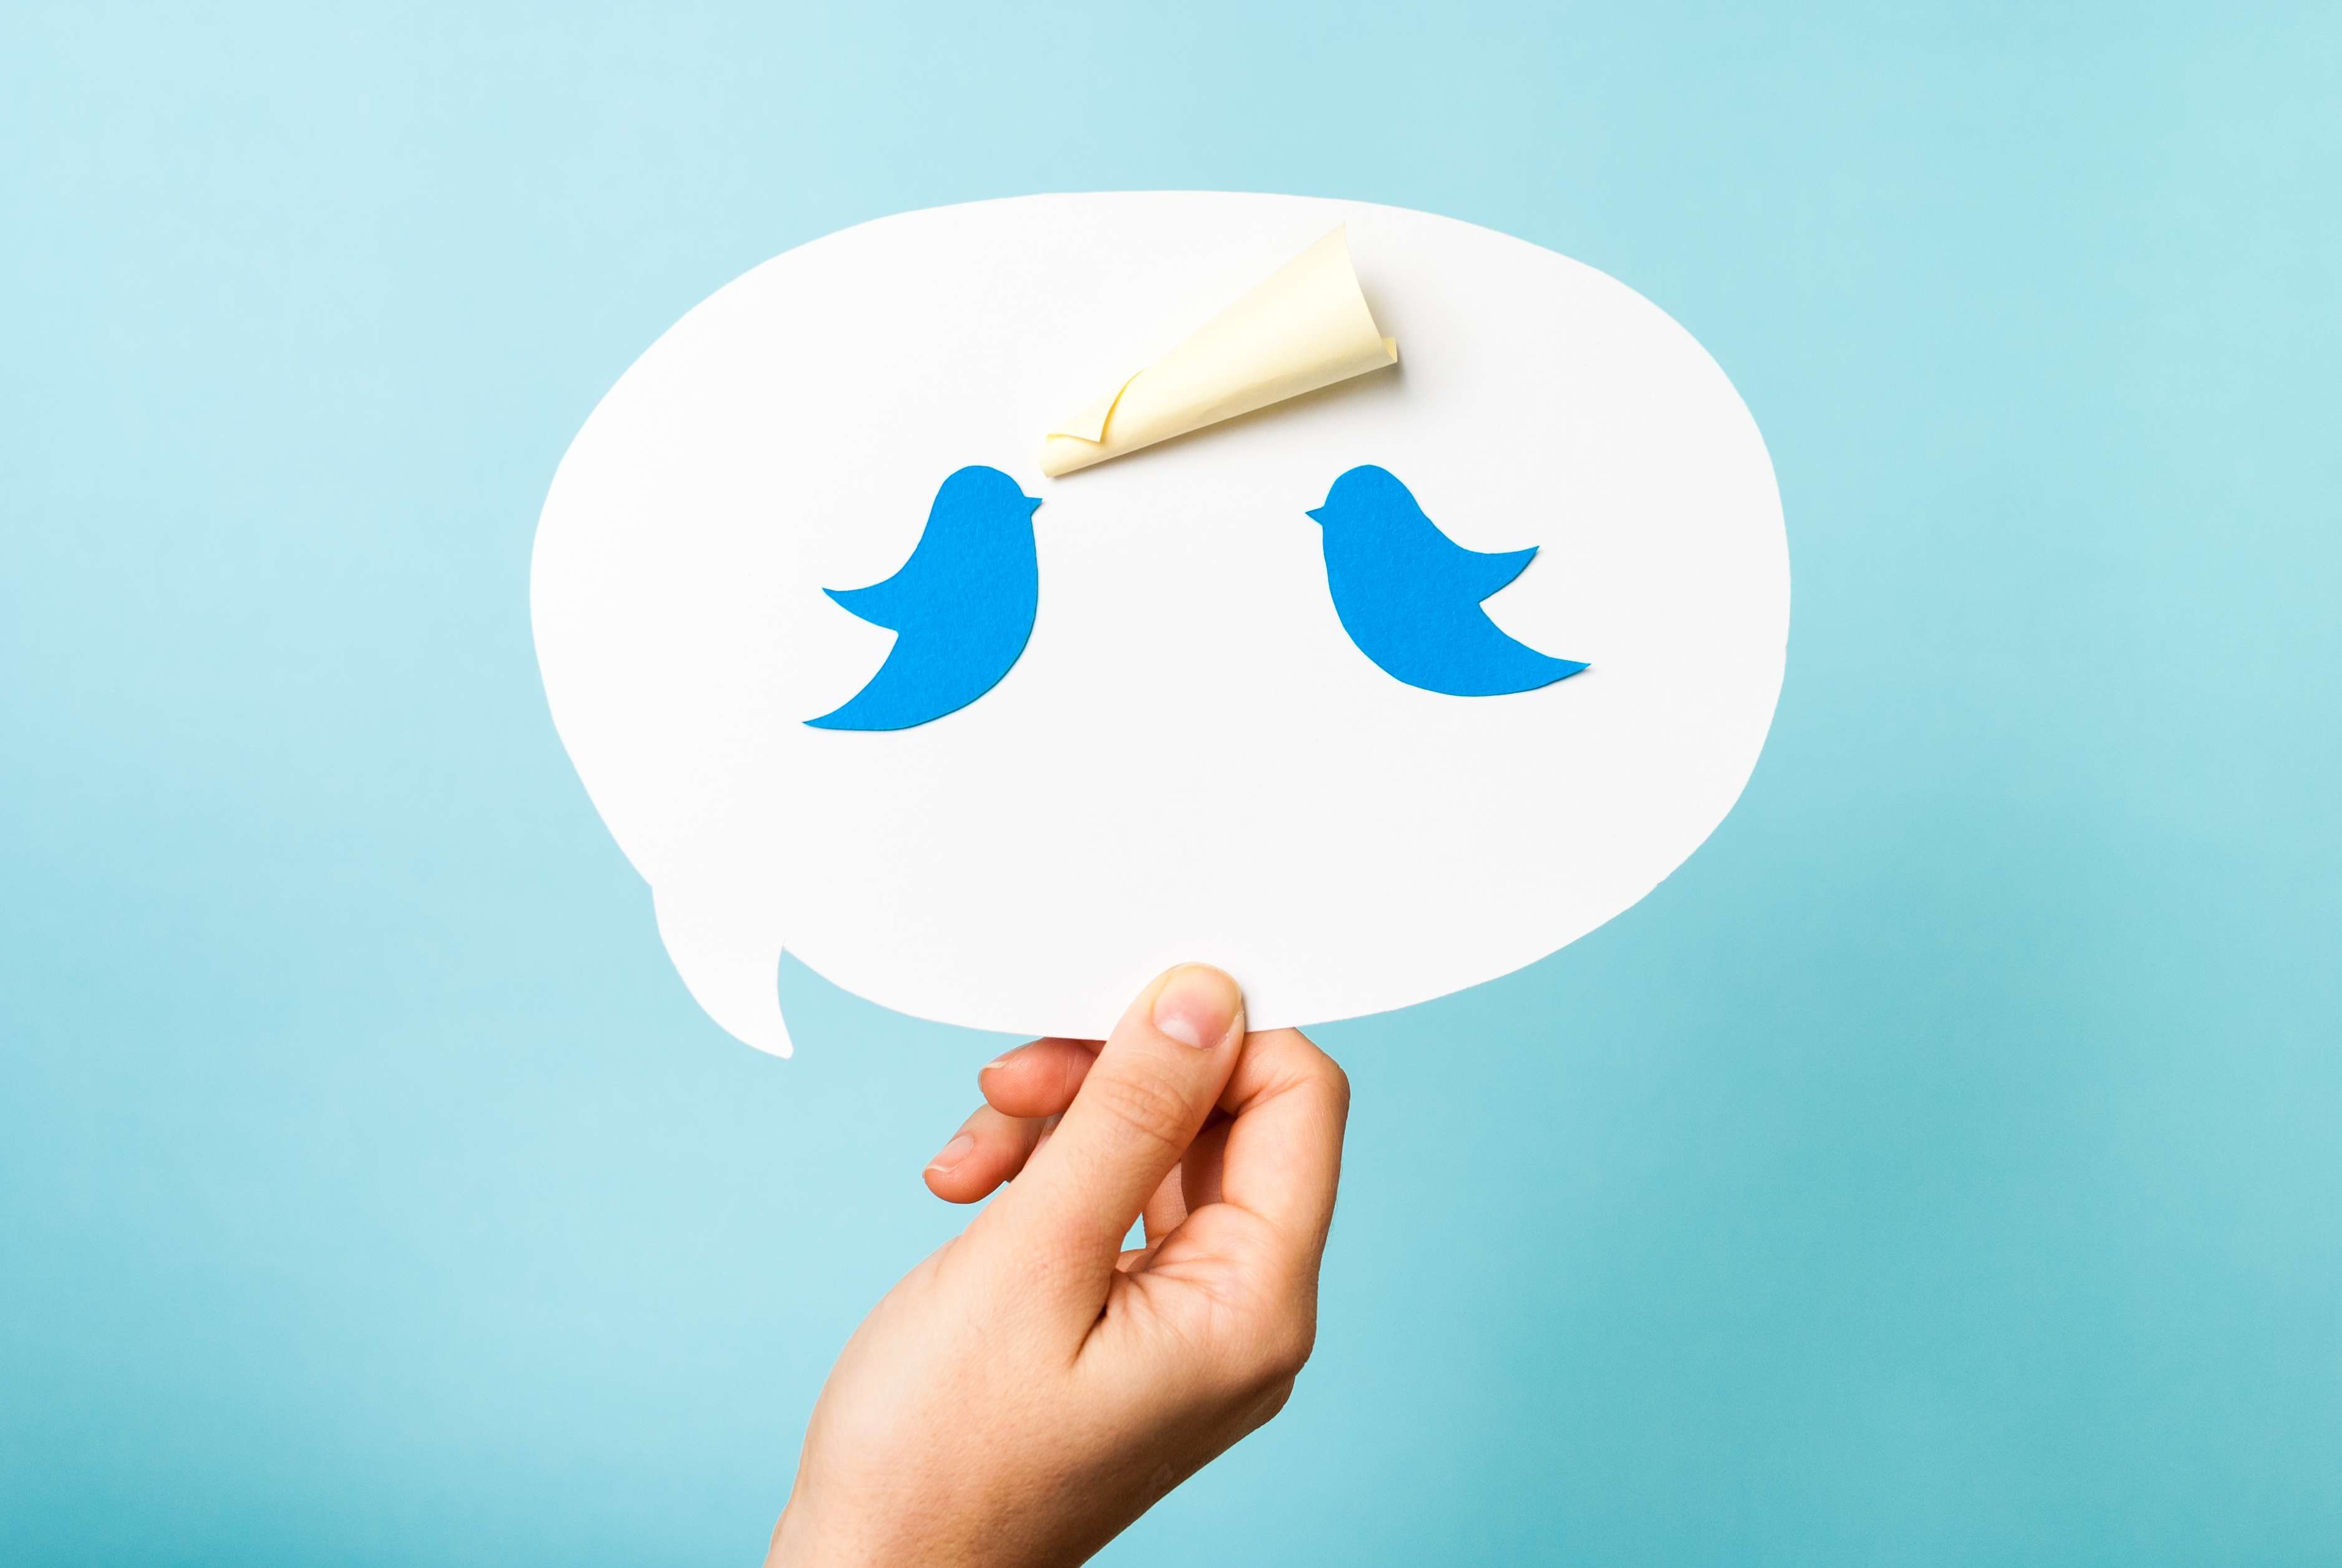 Among Twitter users, plastic surgery could benefit from rejuvenation